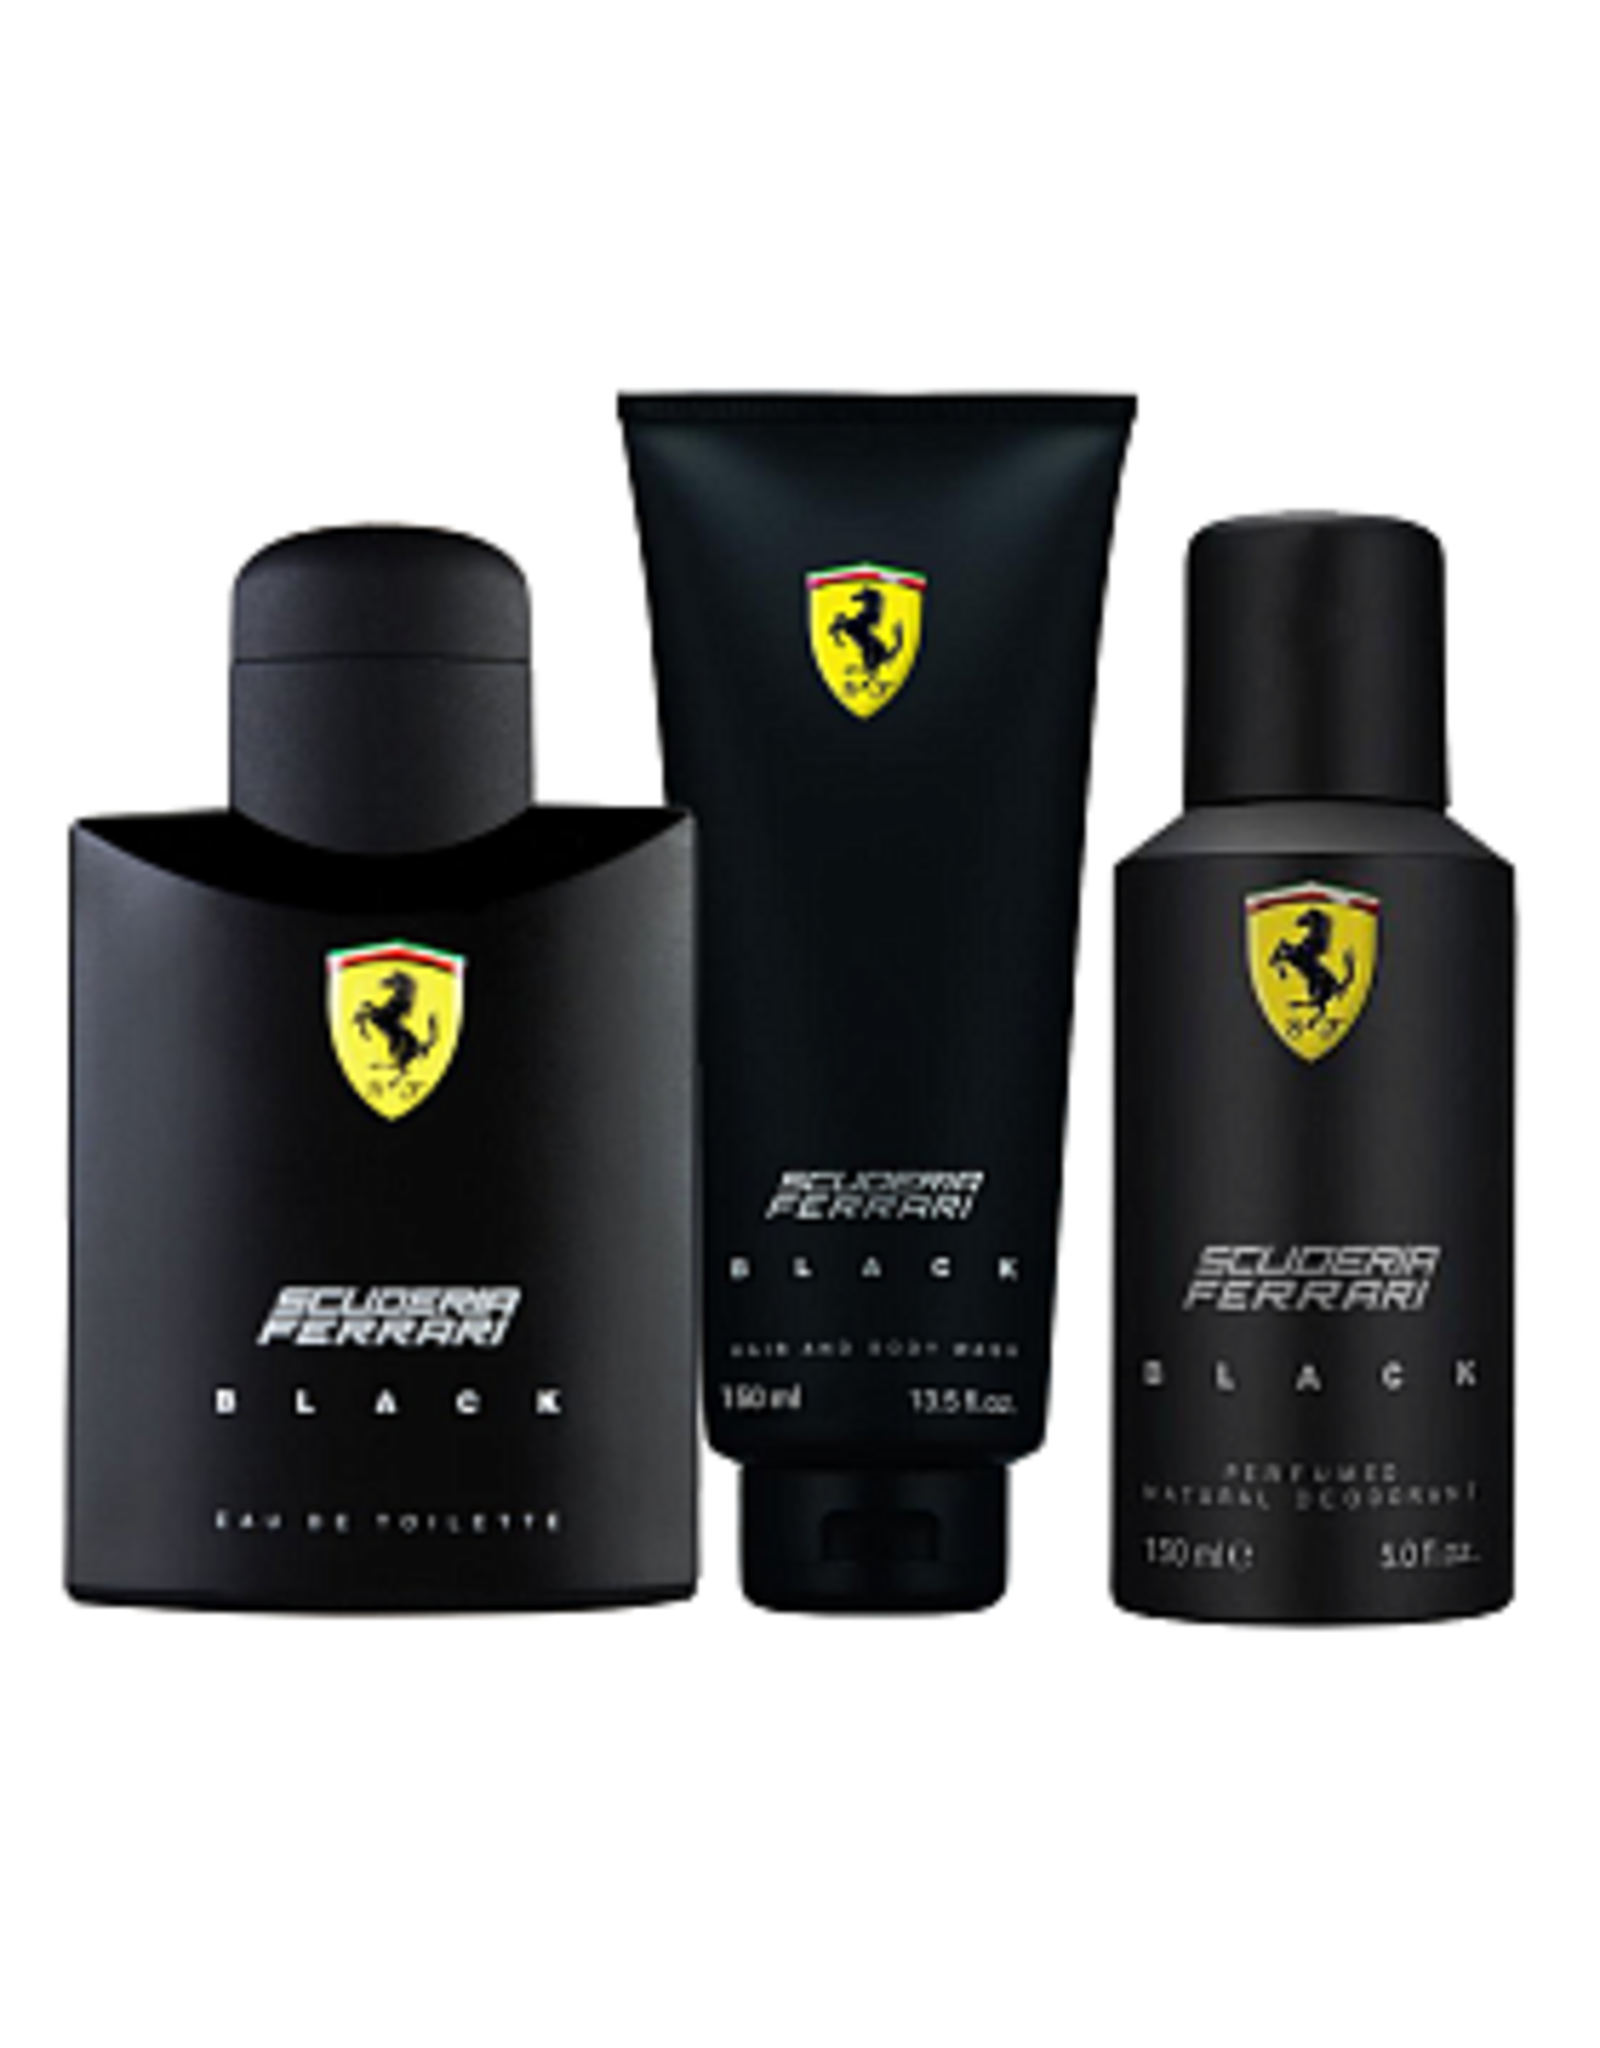 FERRARI FERRARI BLACK 3pcs Set